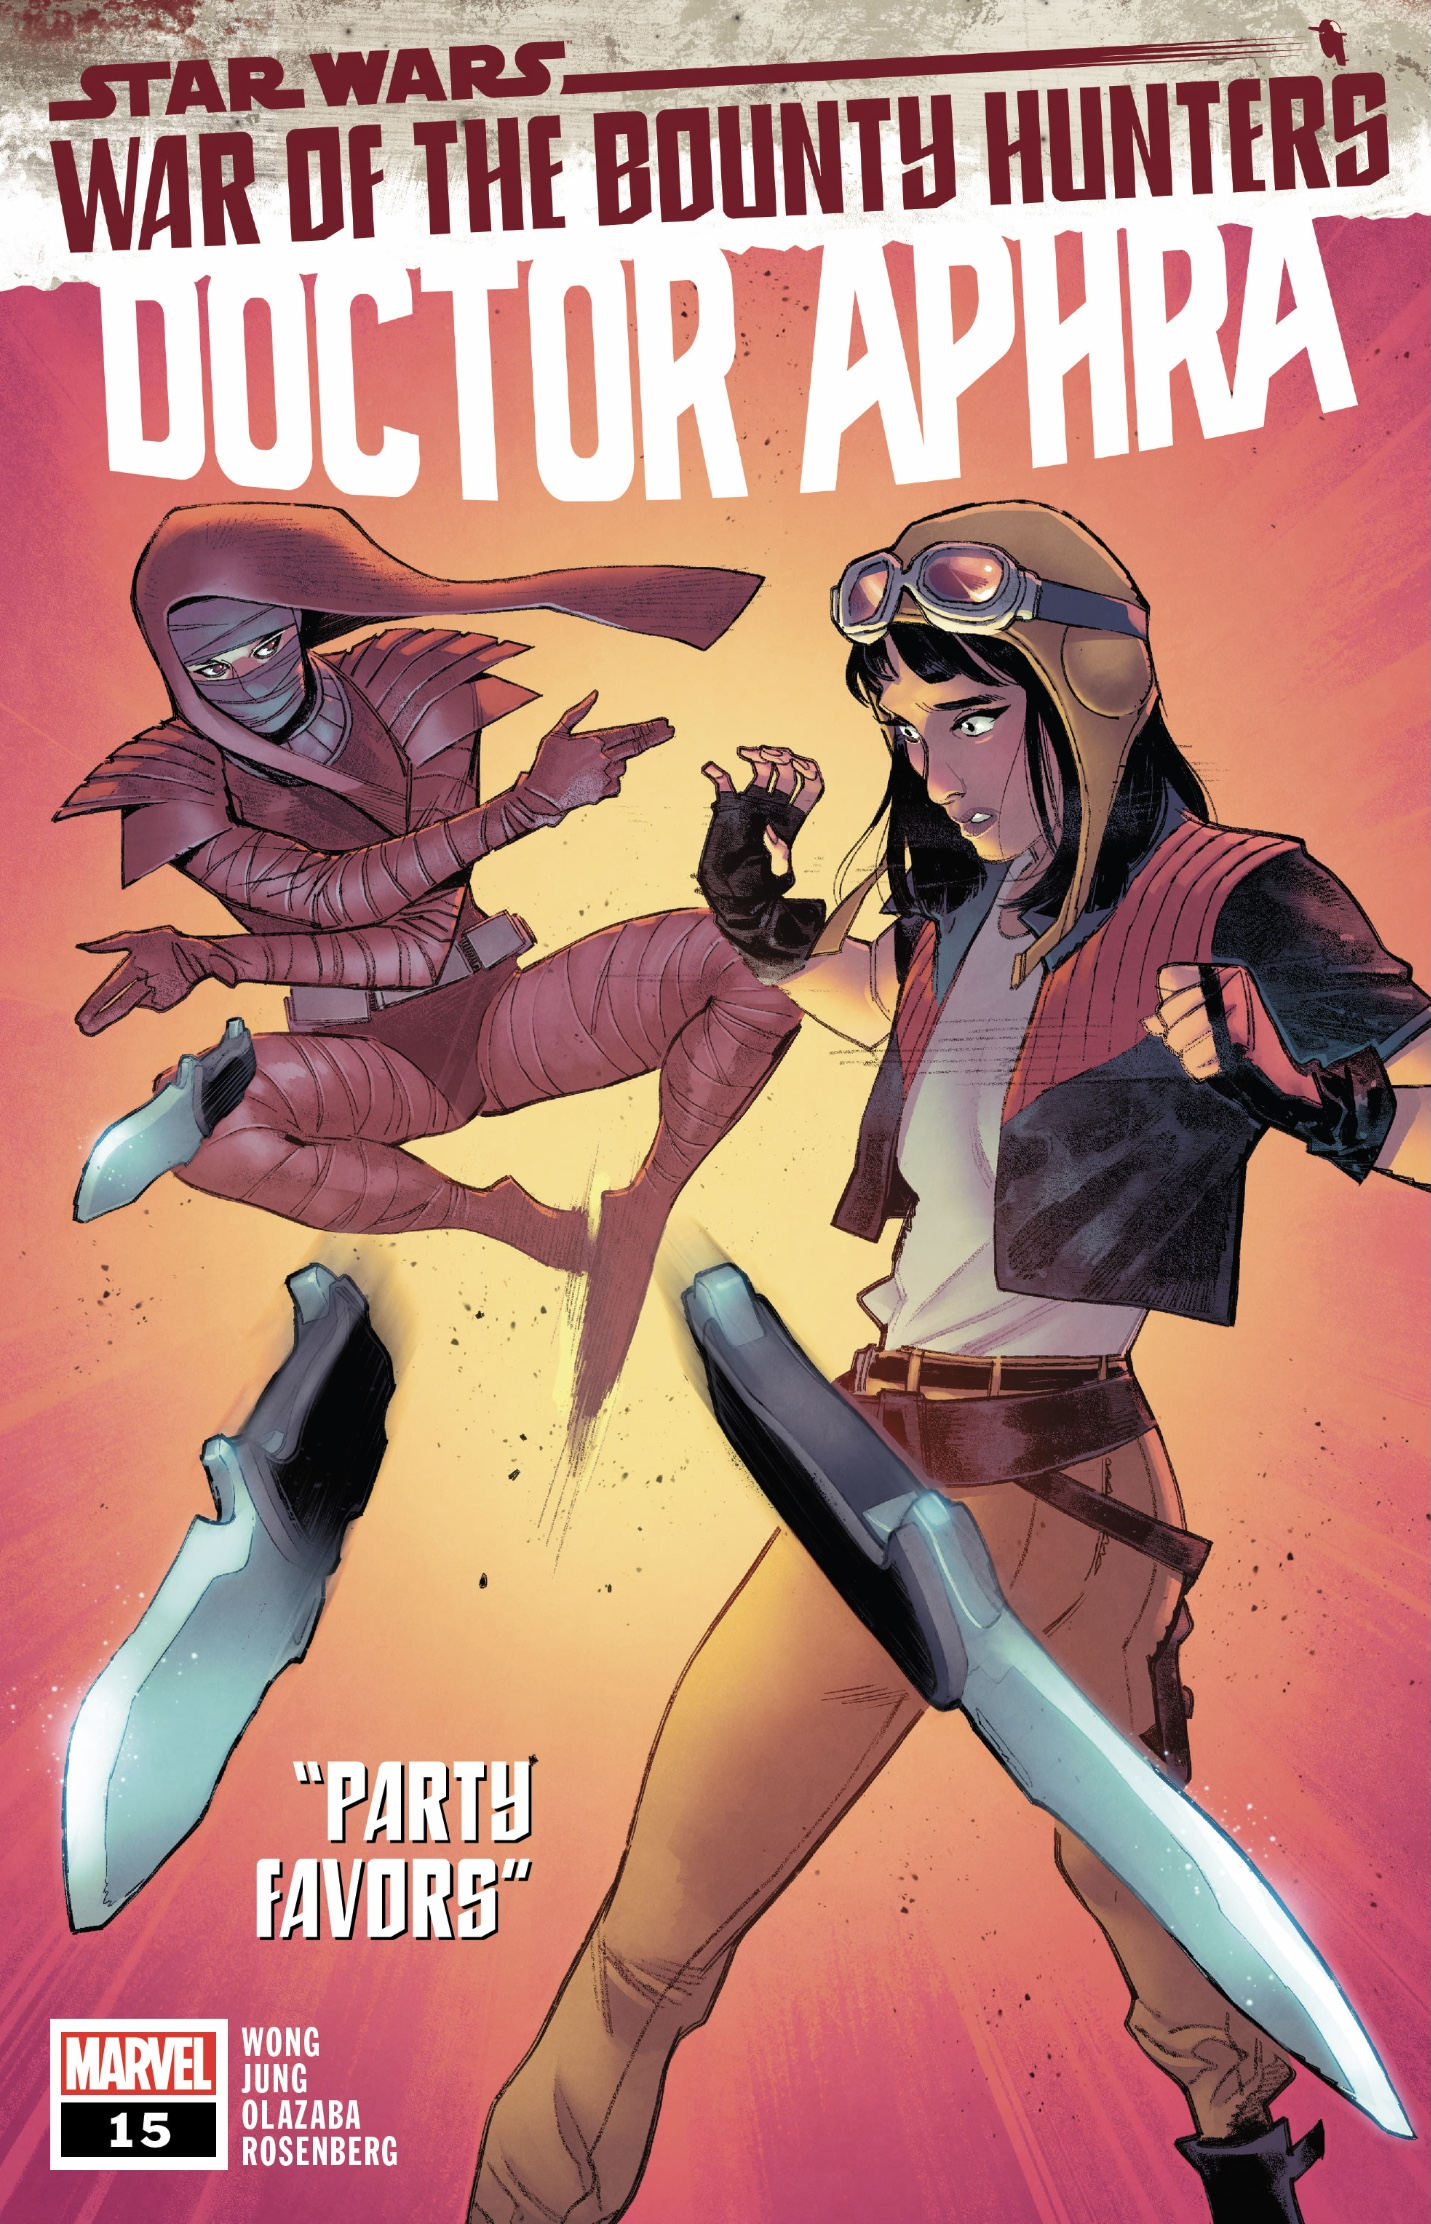 Review – An Ancient Weapon and New Revelations in Marvel's Doctor Aphra #15